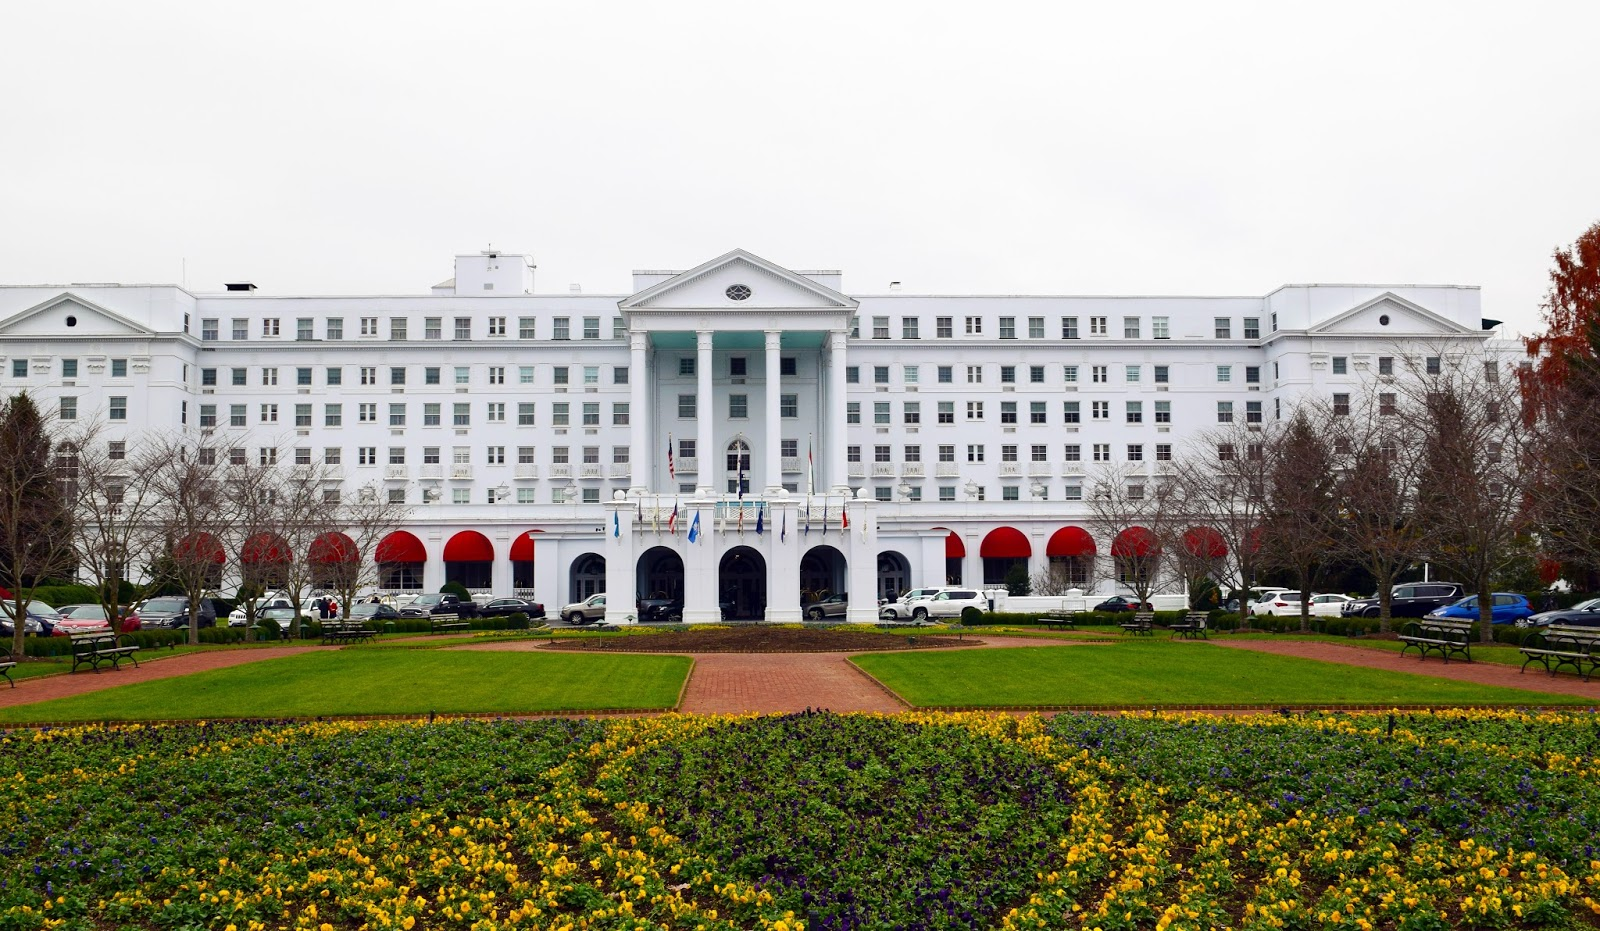 Travel Guide: A Winter Getaway at the Greenbrier